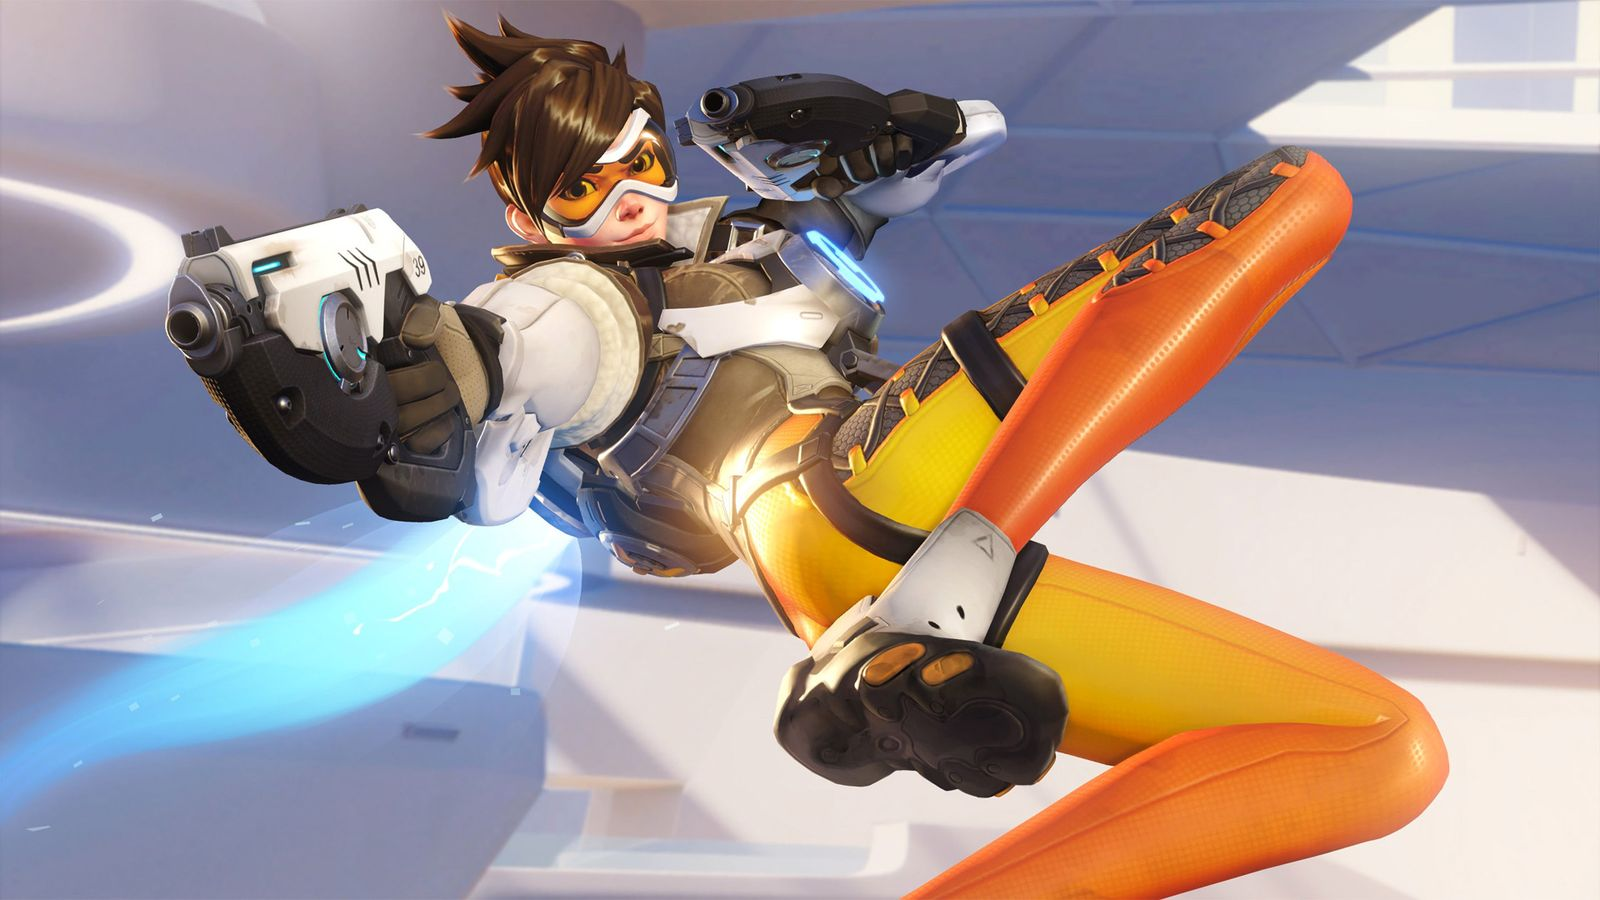 Deathmatch Coming Soon to Overwatch